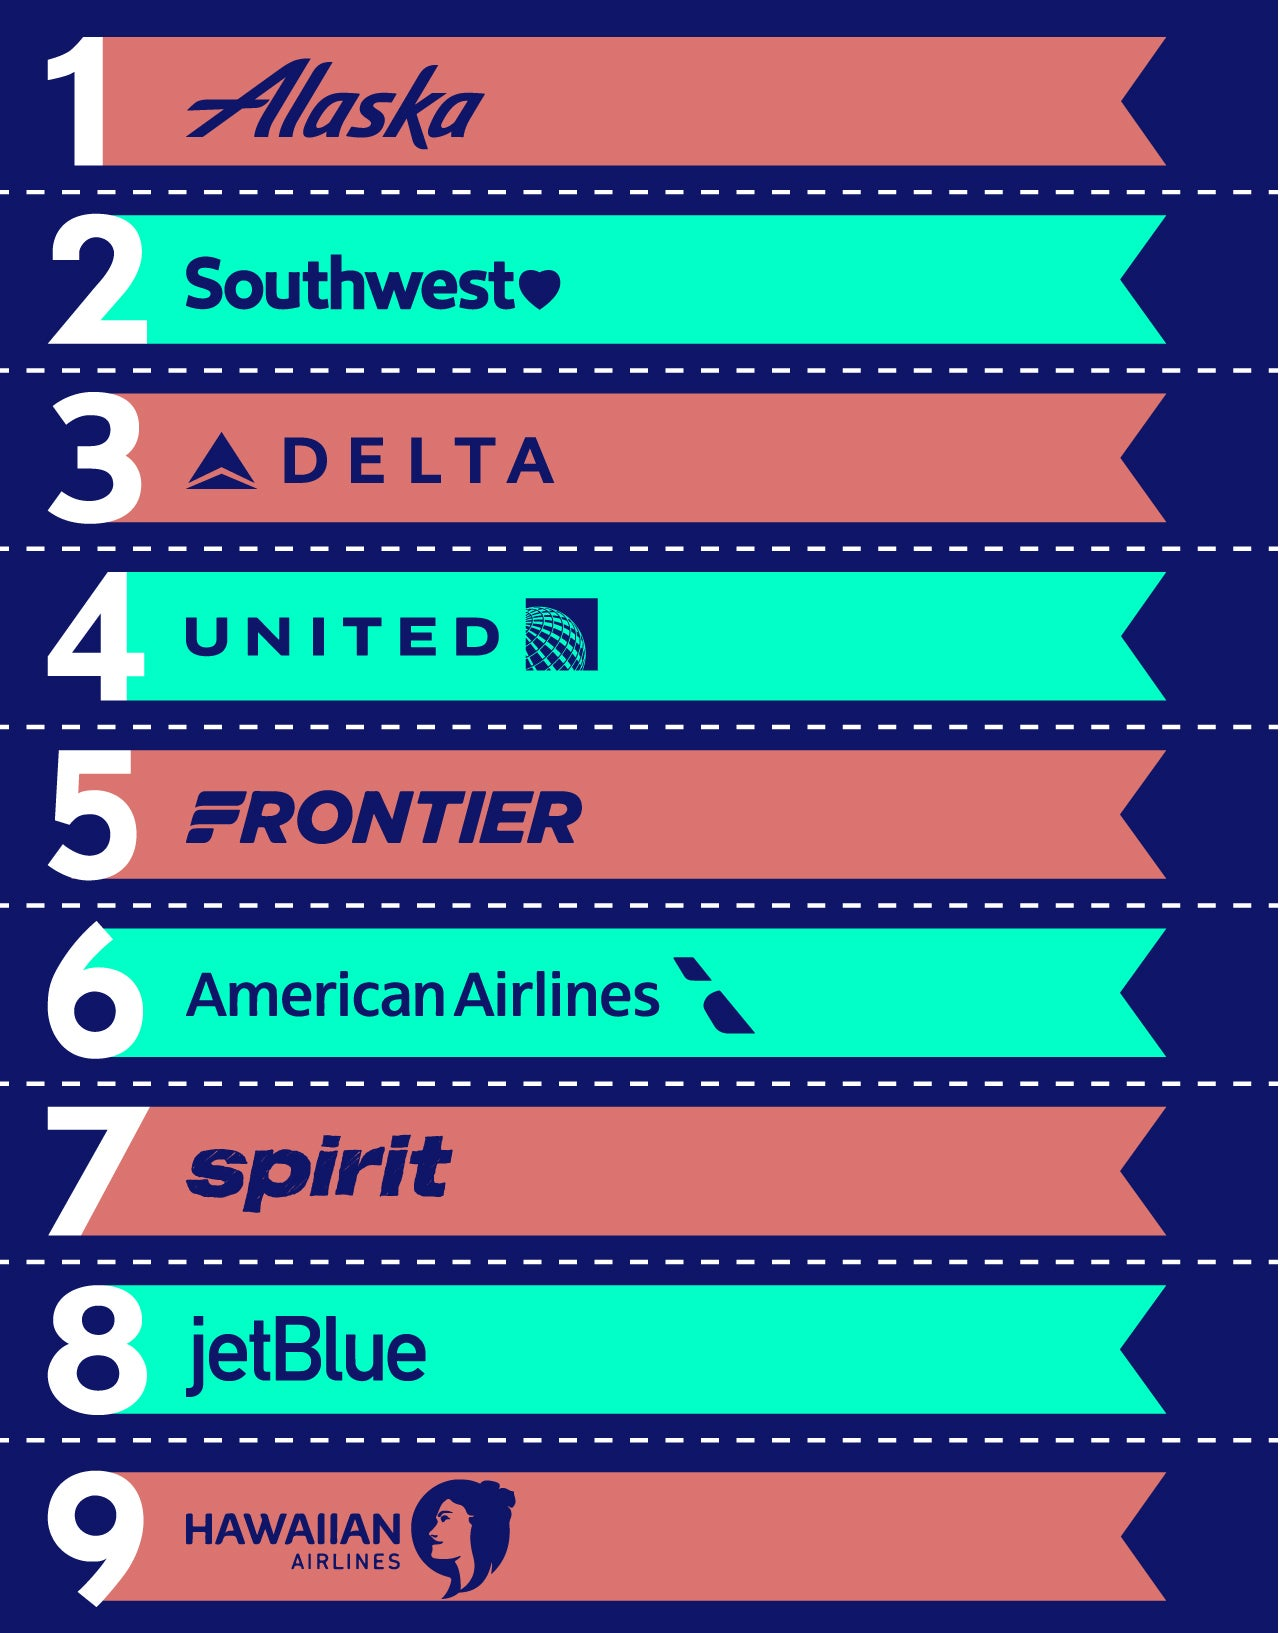 There s quite a bit to unpack in these results so let s take a look at each airline s performance one at a time…